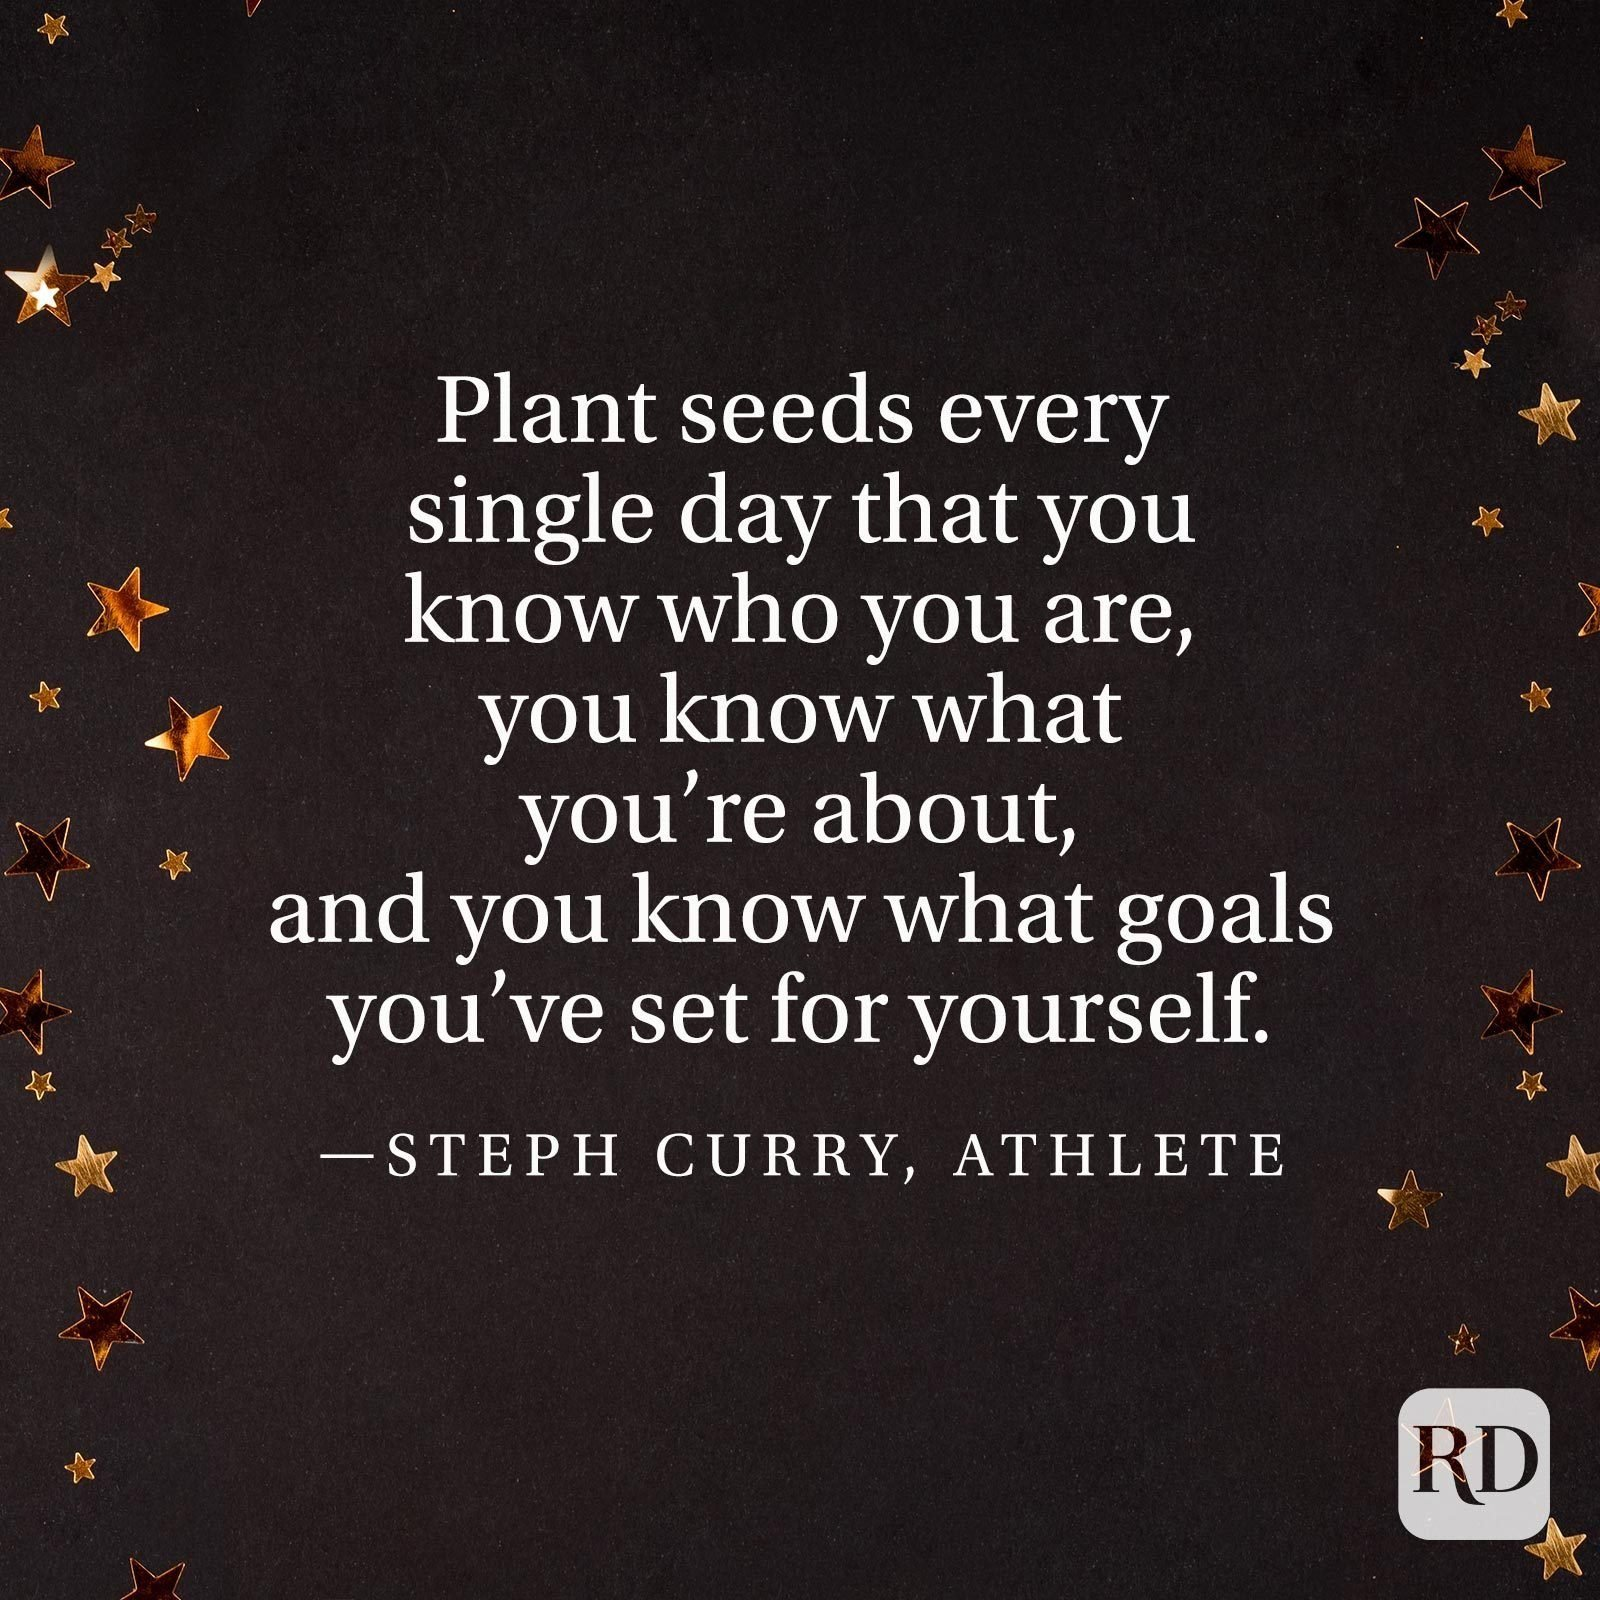 """""""Plant seeds every single day that you know who you are, you know what you're about, and you know what goals you've set for yourself."""" —Steph Curry, athlete"""